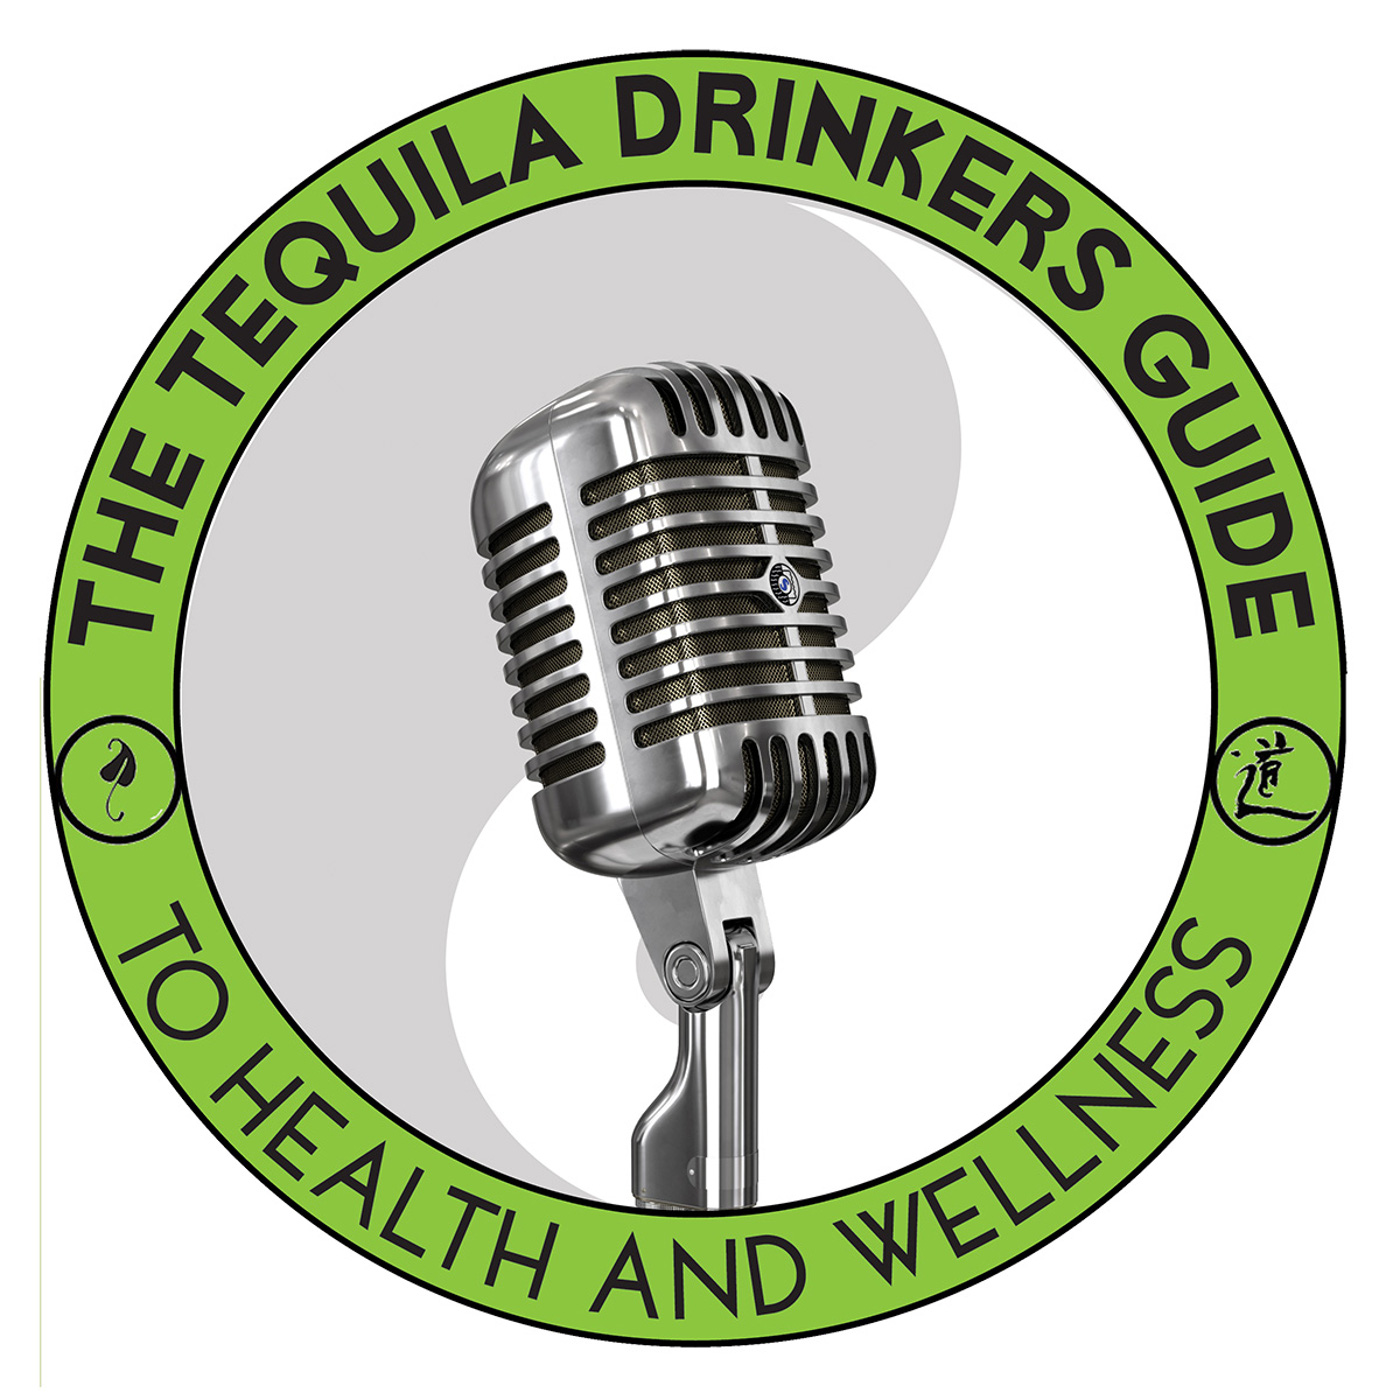 The Tequila Drinkers Guide To Health And Wellness show art